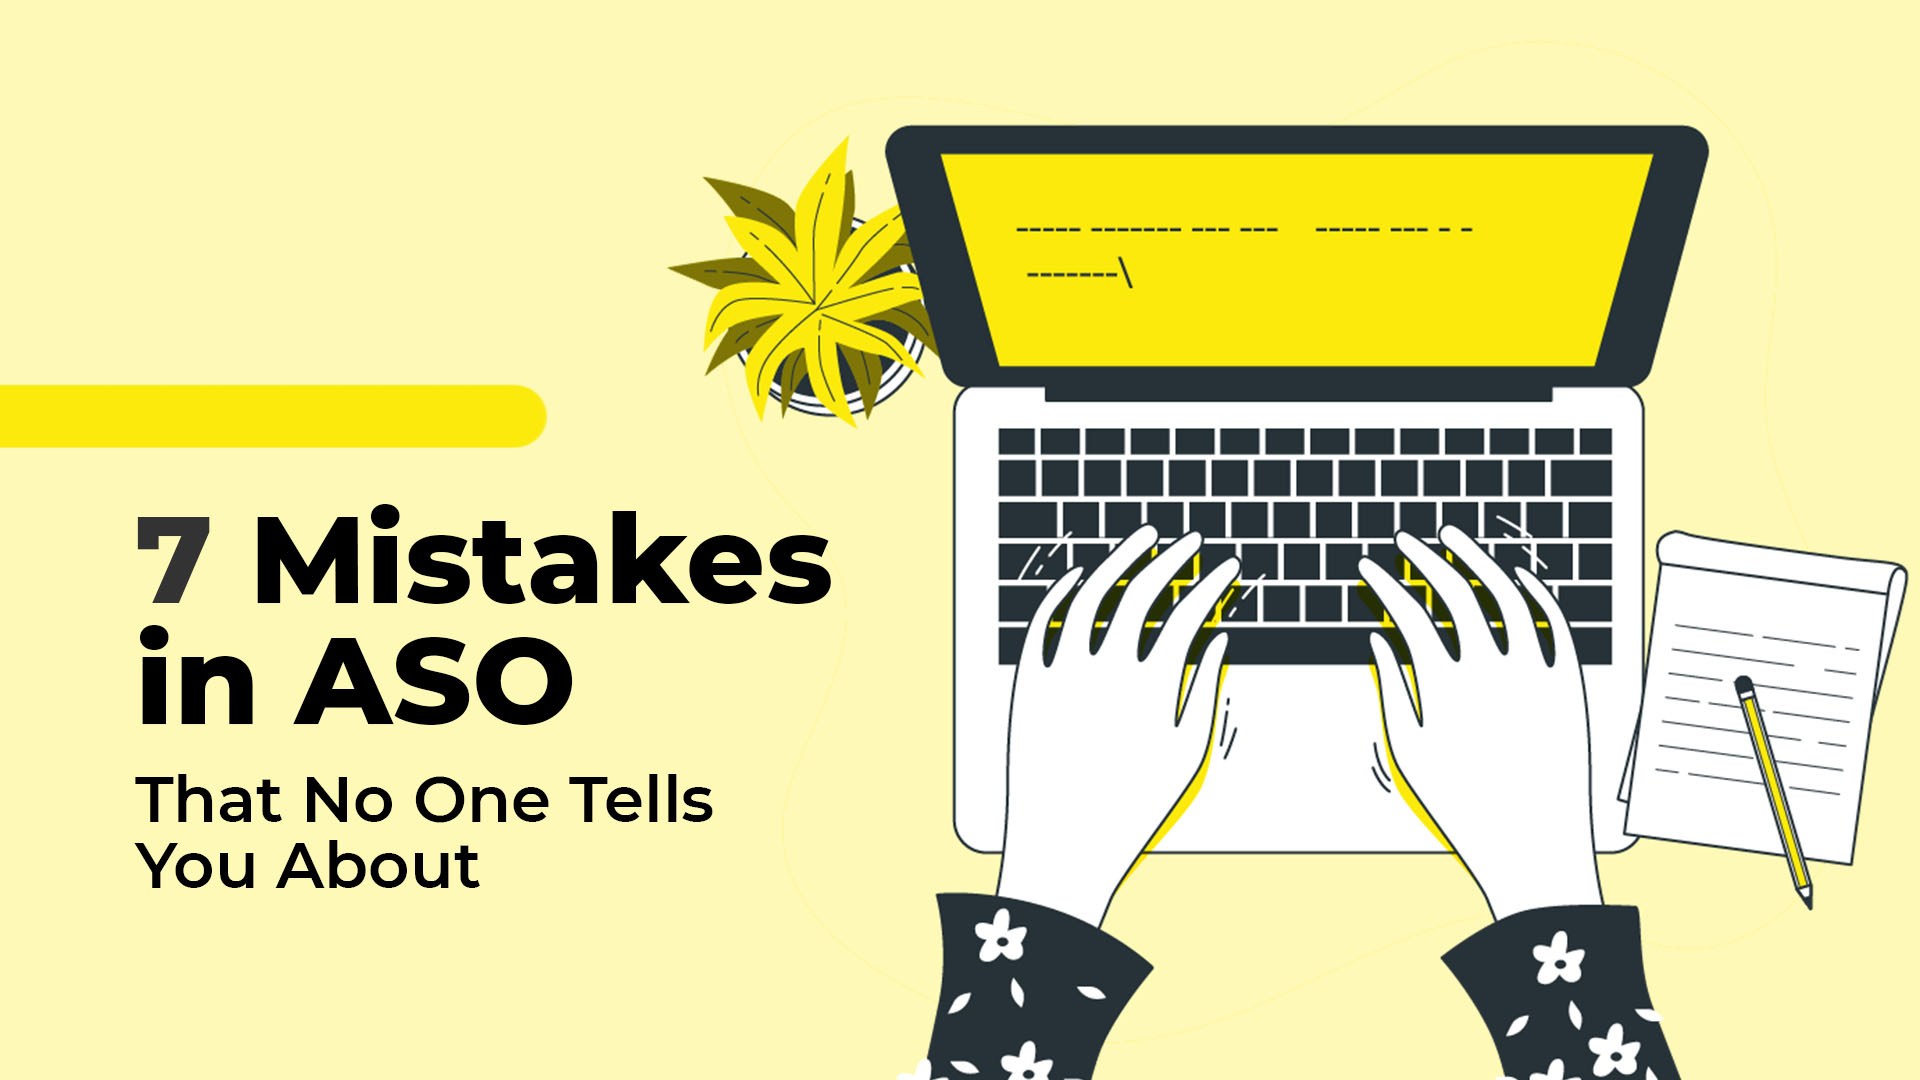 7 Mistakes in ASO That No One Tells You About